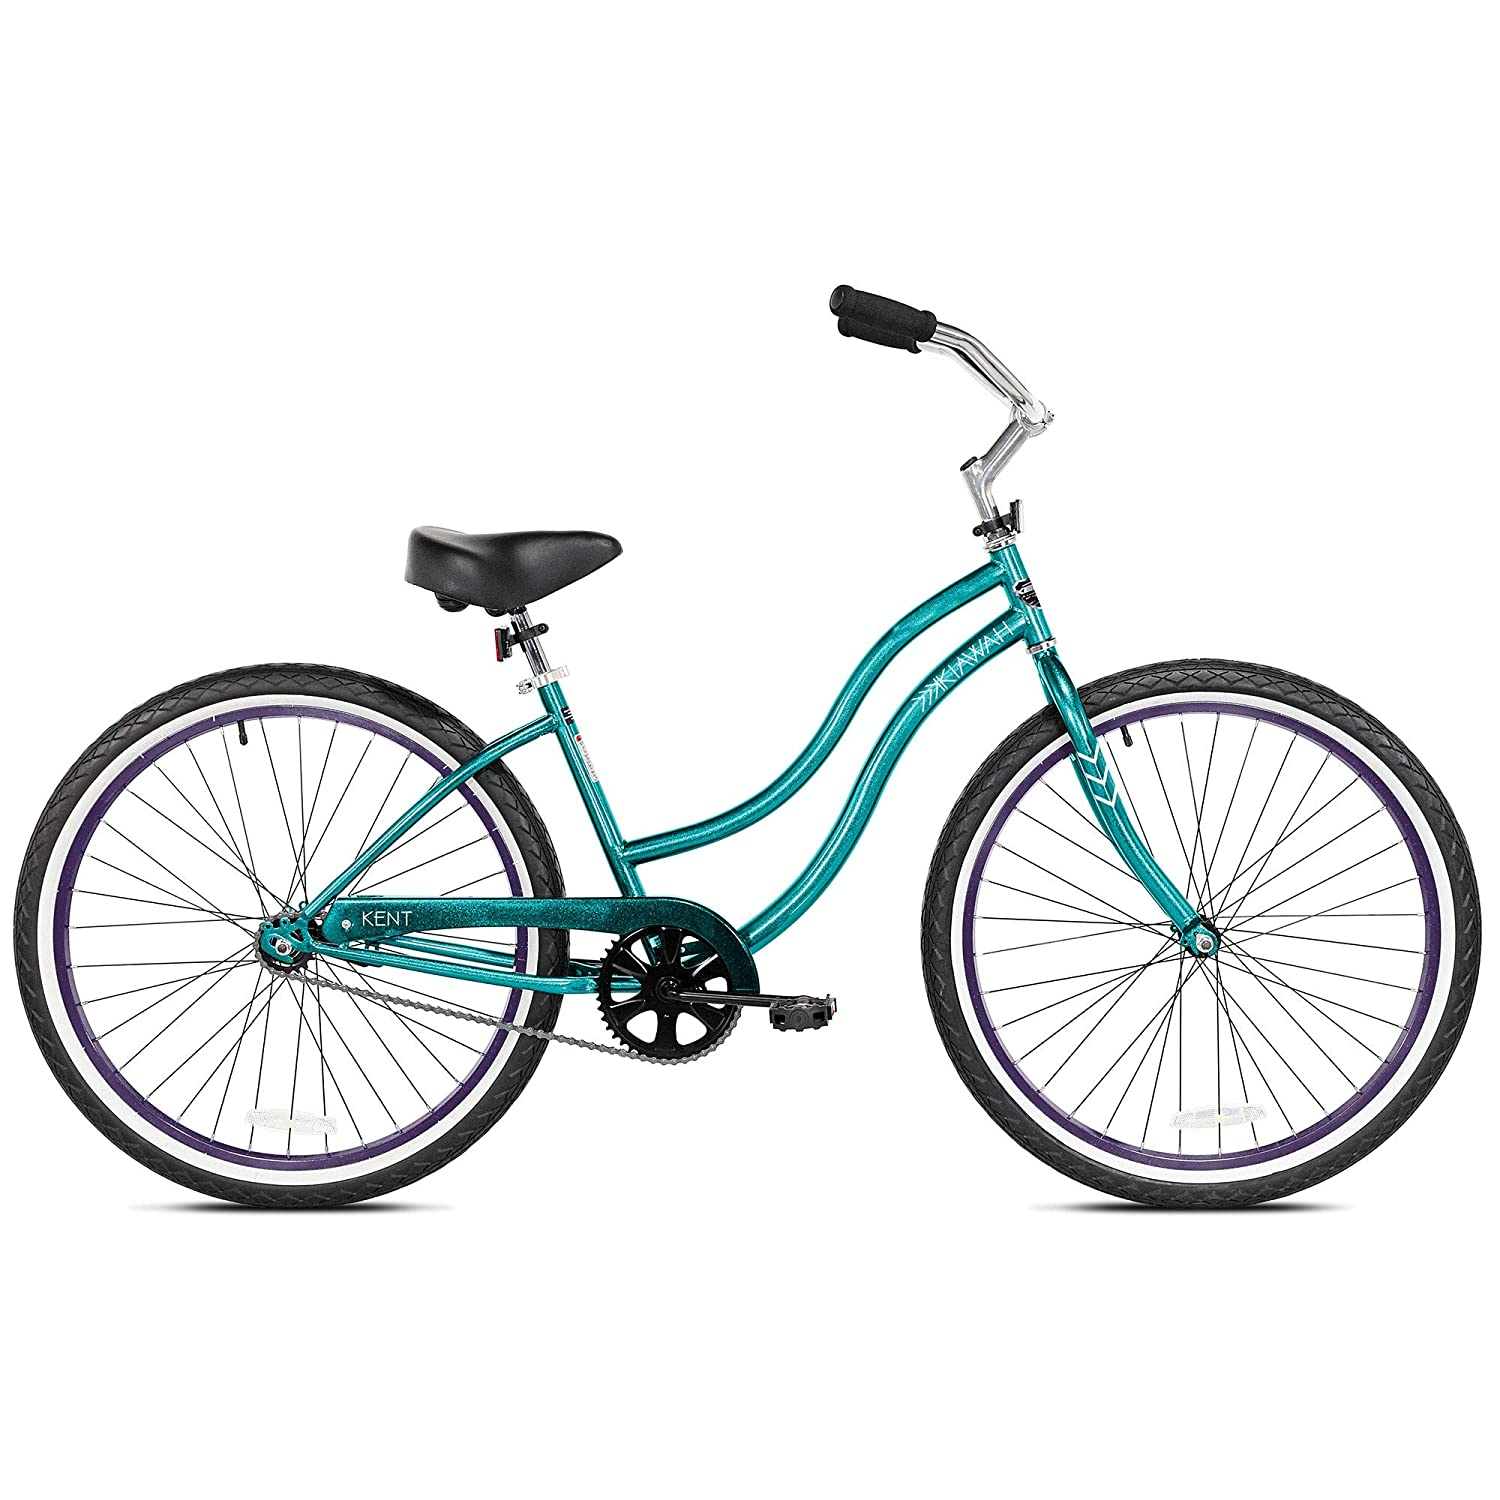 Kent International 26 Inch Back Wheel Kiawah Ladies Cruiser Street Bicycle, Teal